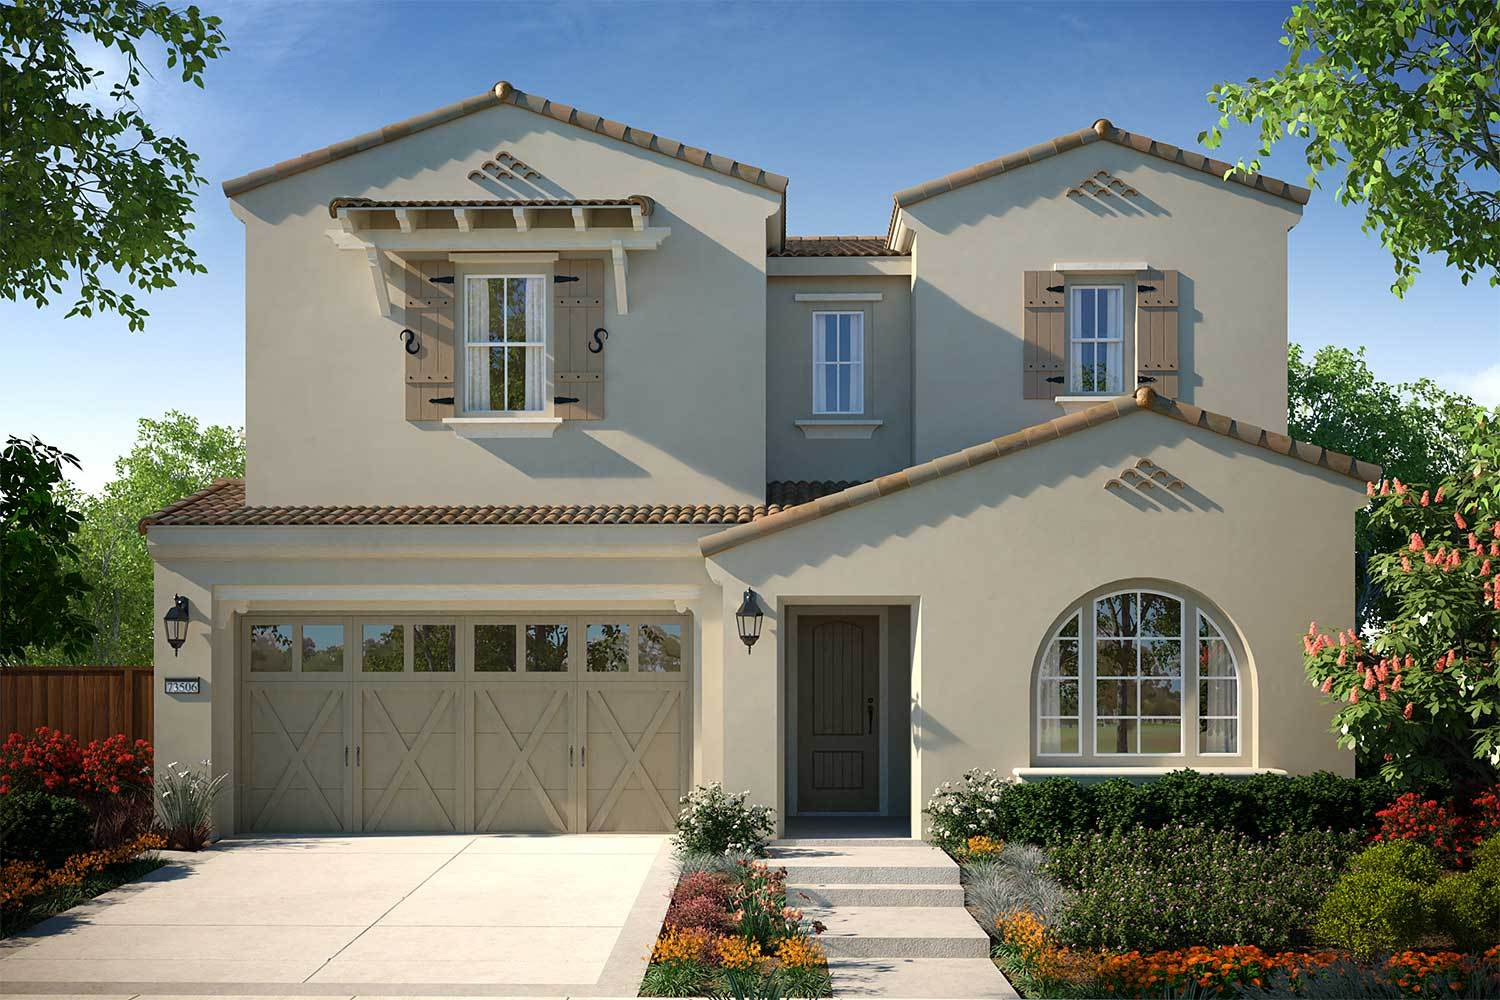 Single Family for Active at Palm - Residence 1 42419 Areca Palm Street Fremont, California 94539 United States